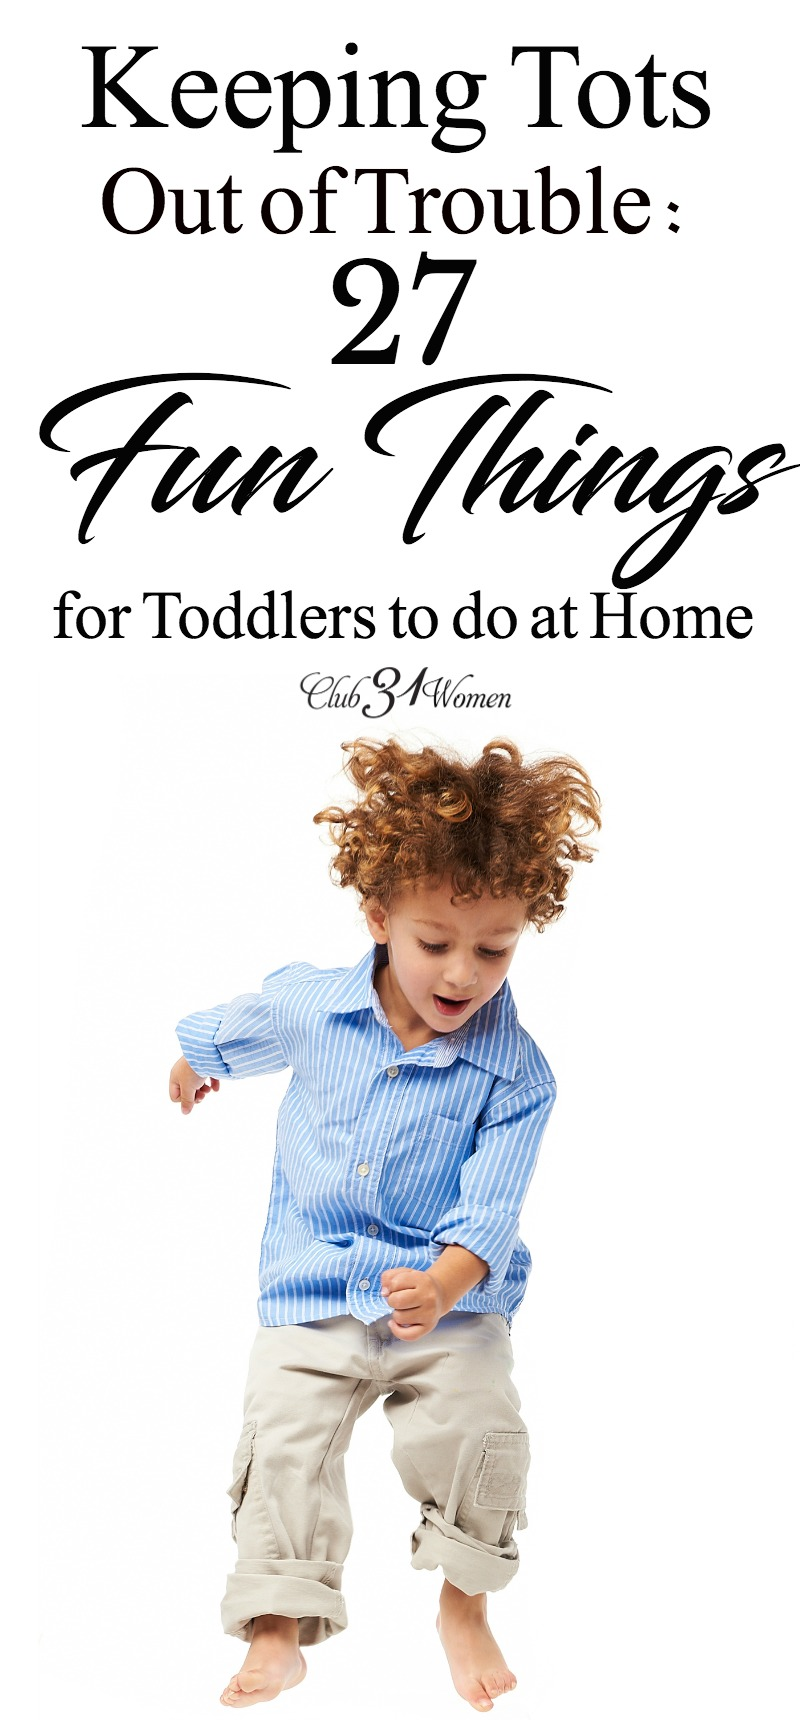 How can you keep your toddler out of trouble? Keep them busy? Here is a list of fun and easy activities for them - tried and true ideas from a mom of 8! via @Club31Women